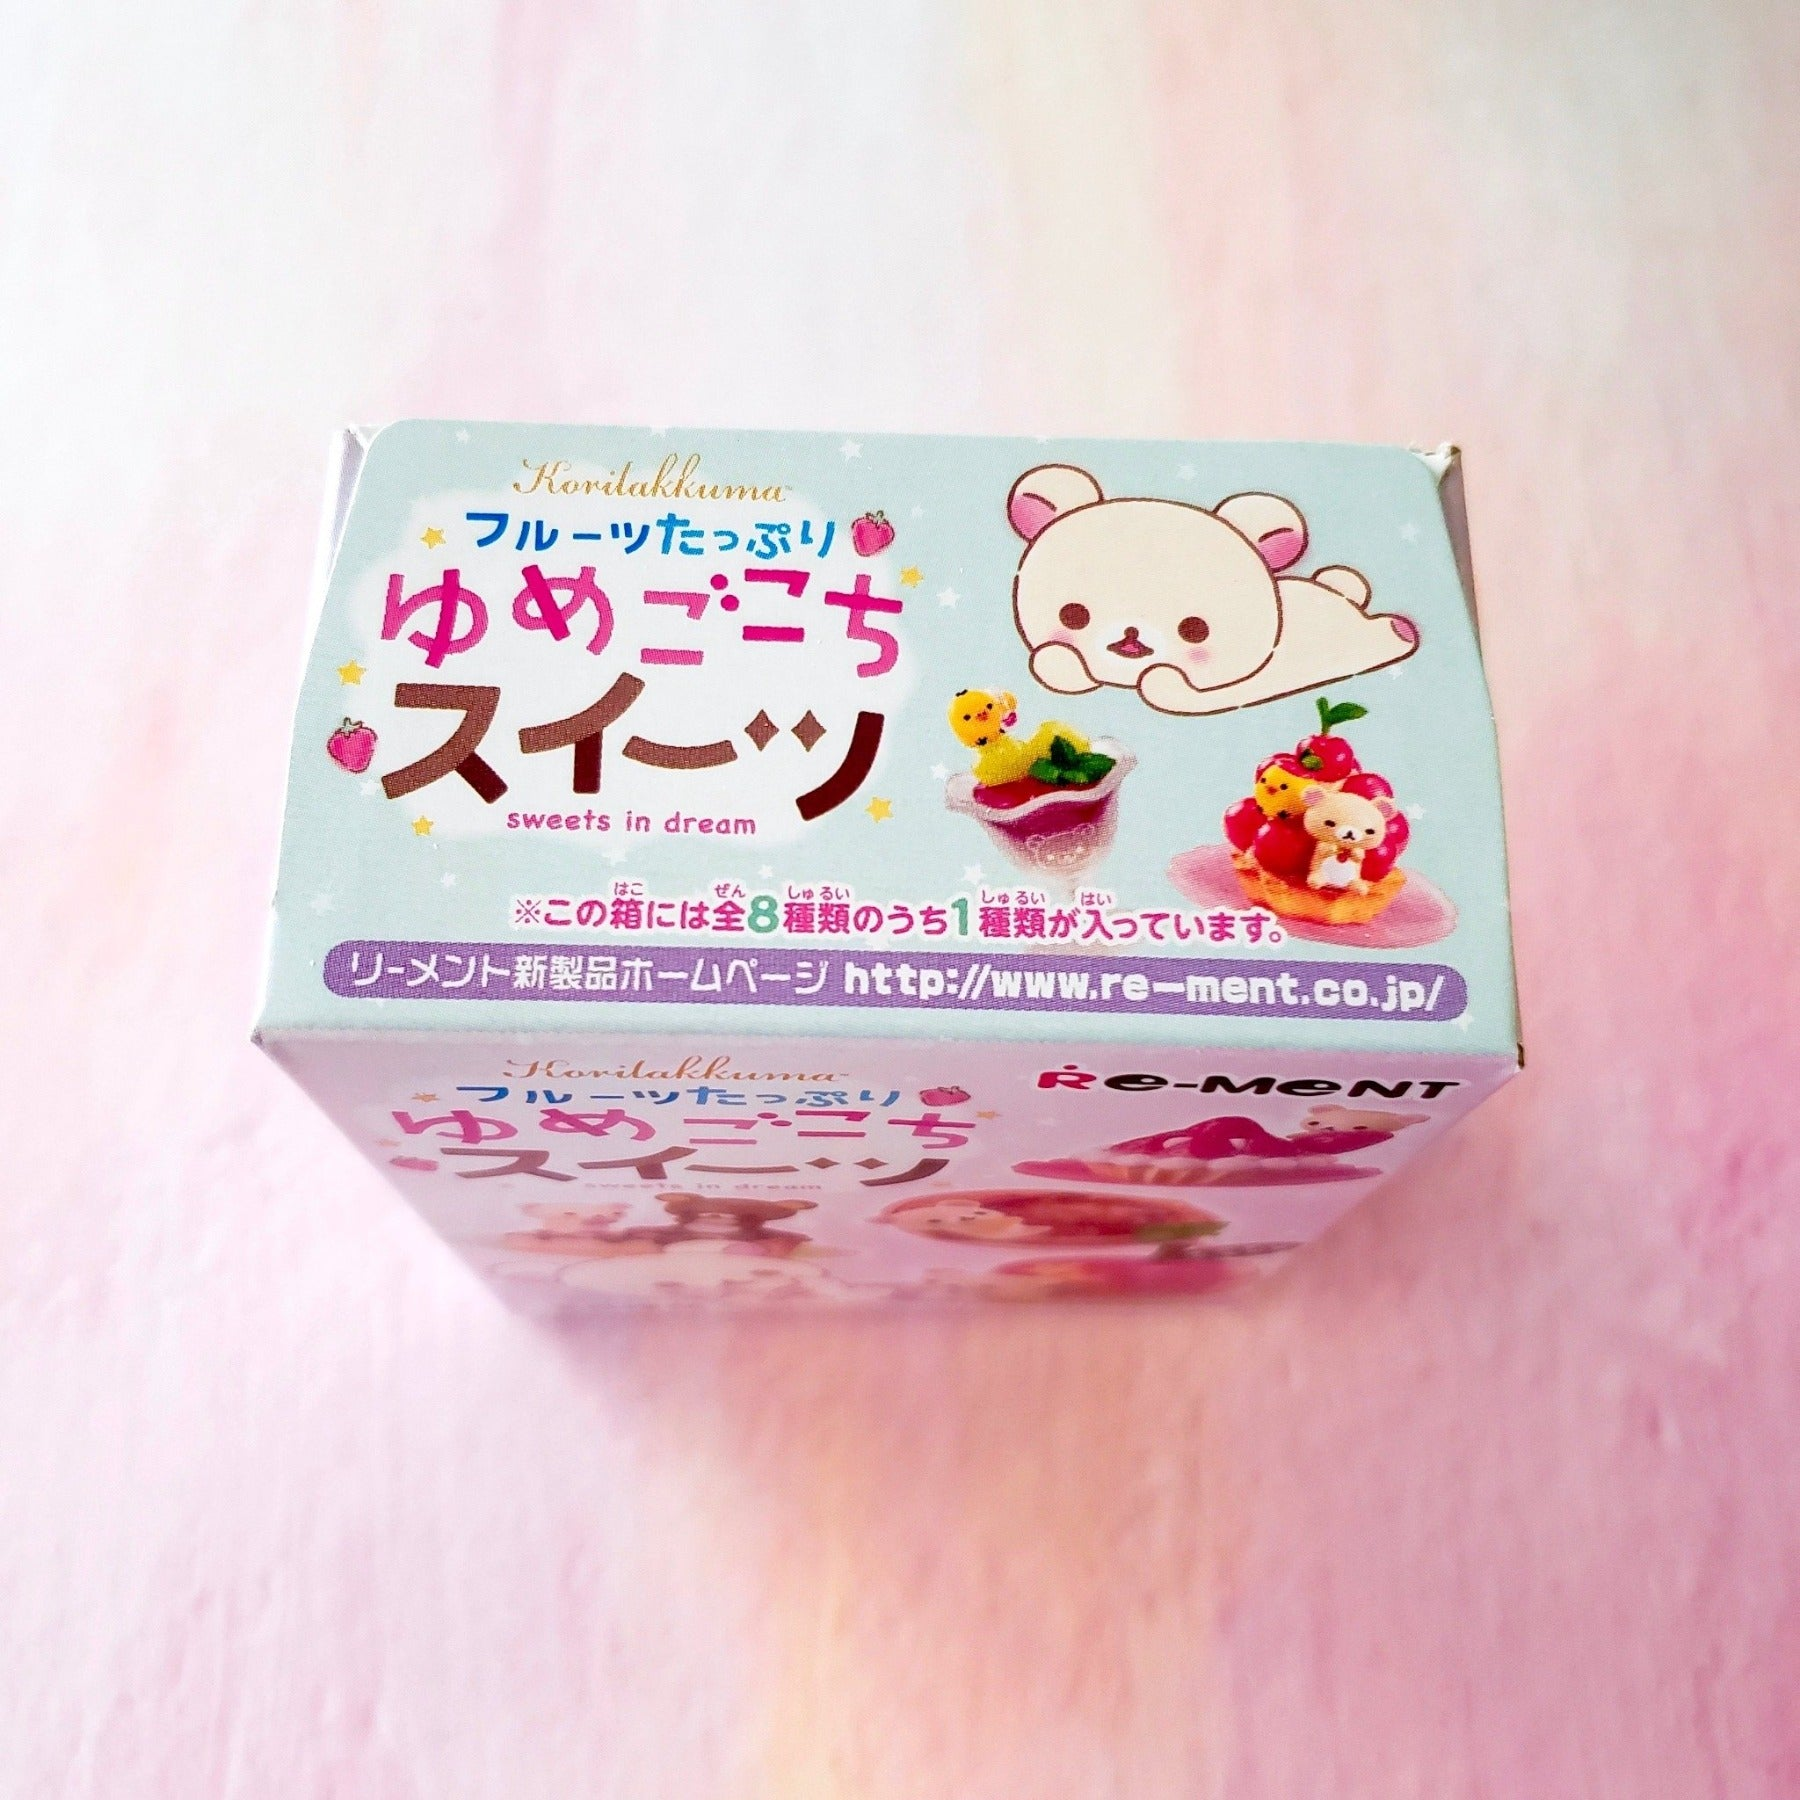 Re-Ment Korilakkuma Sweets in Dream series top of box